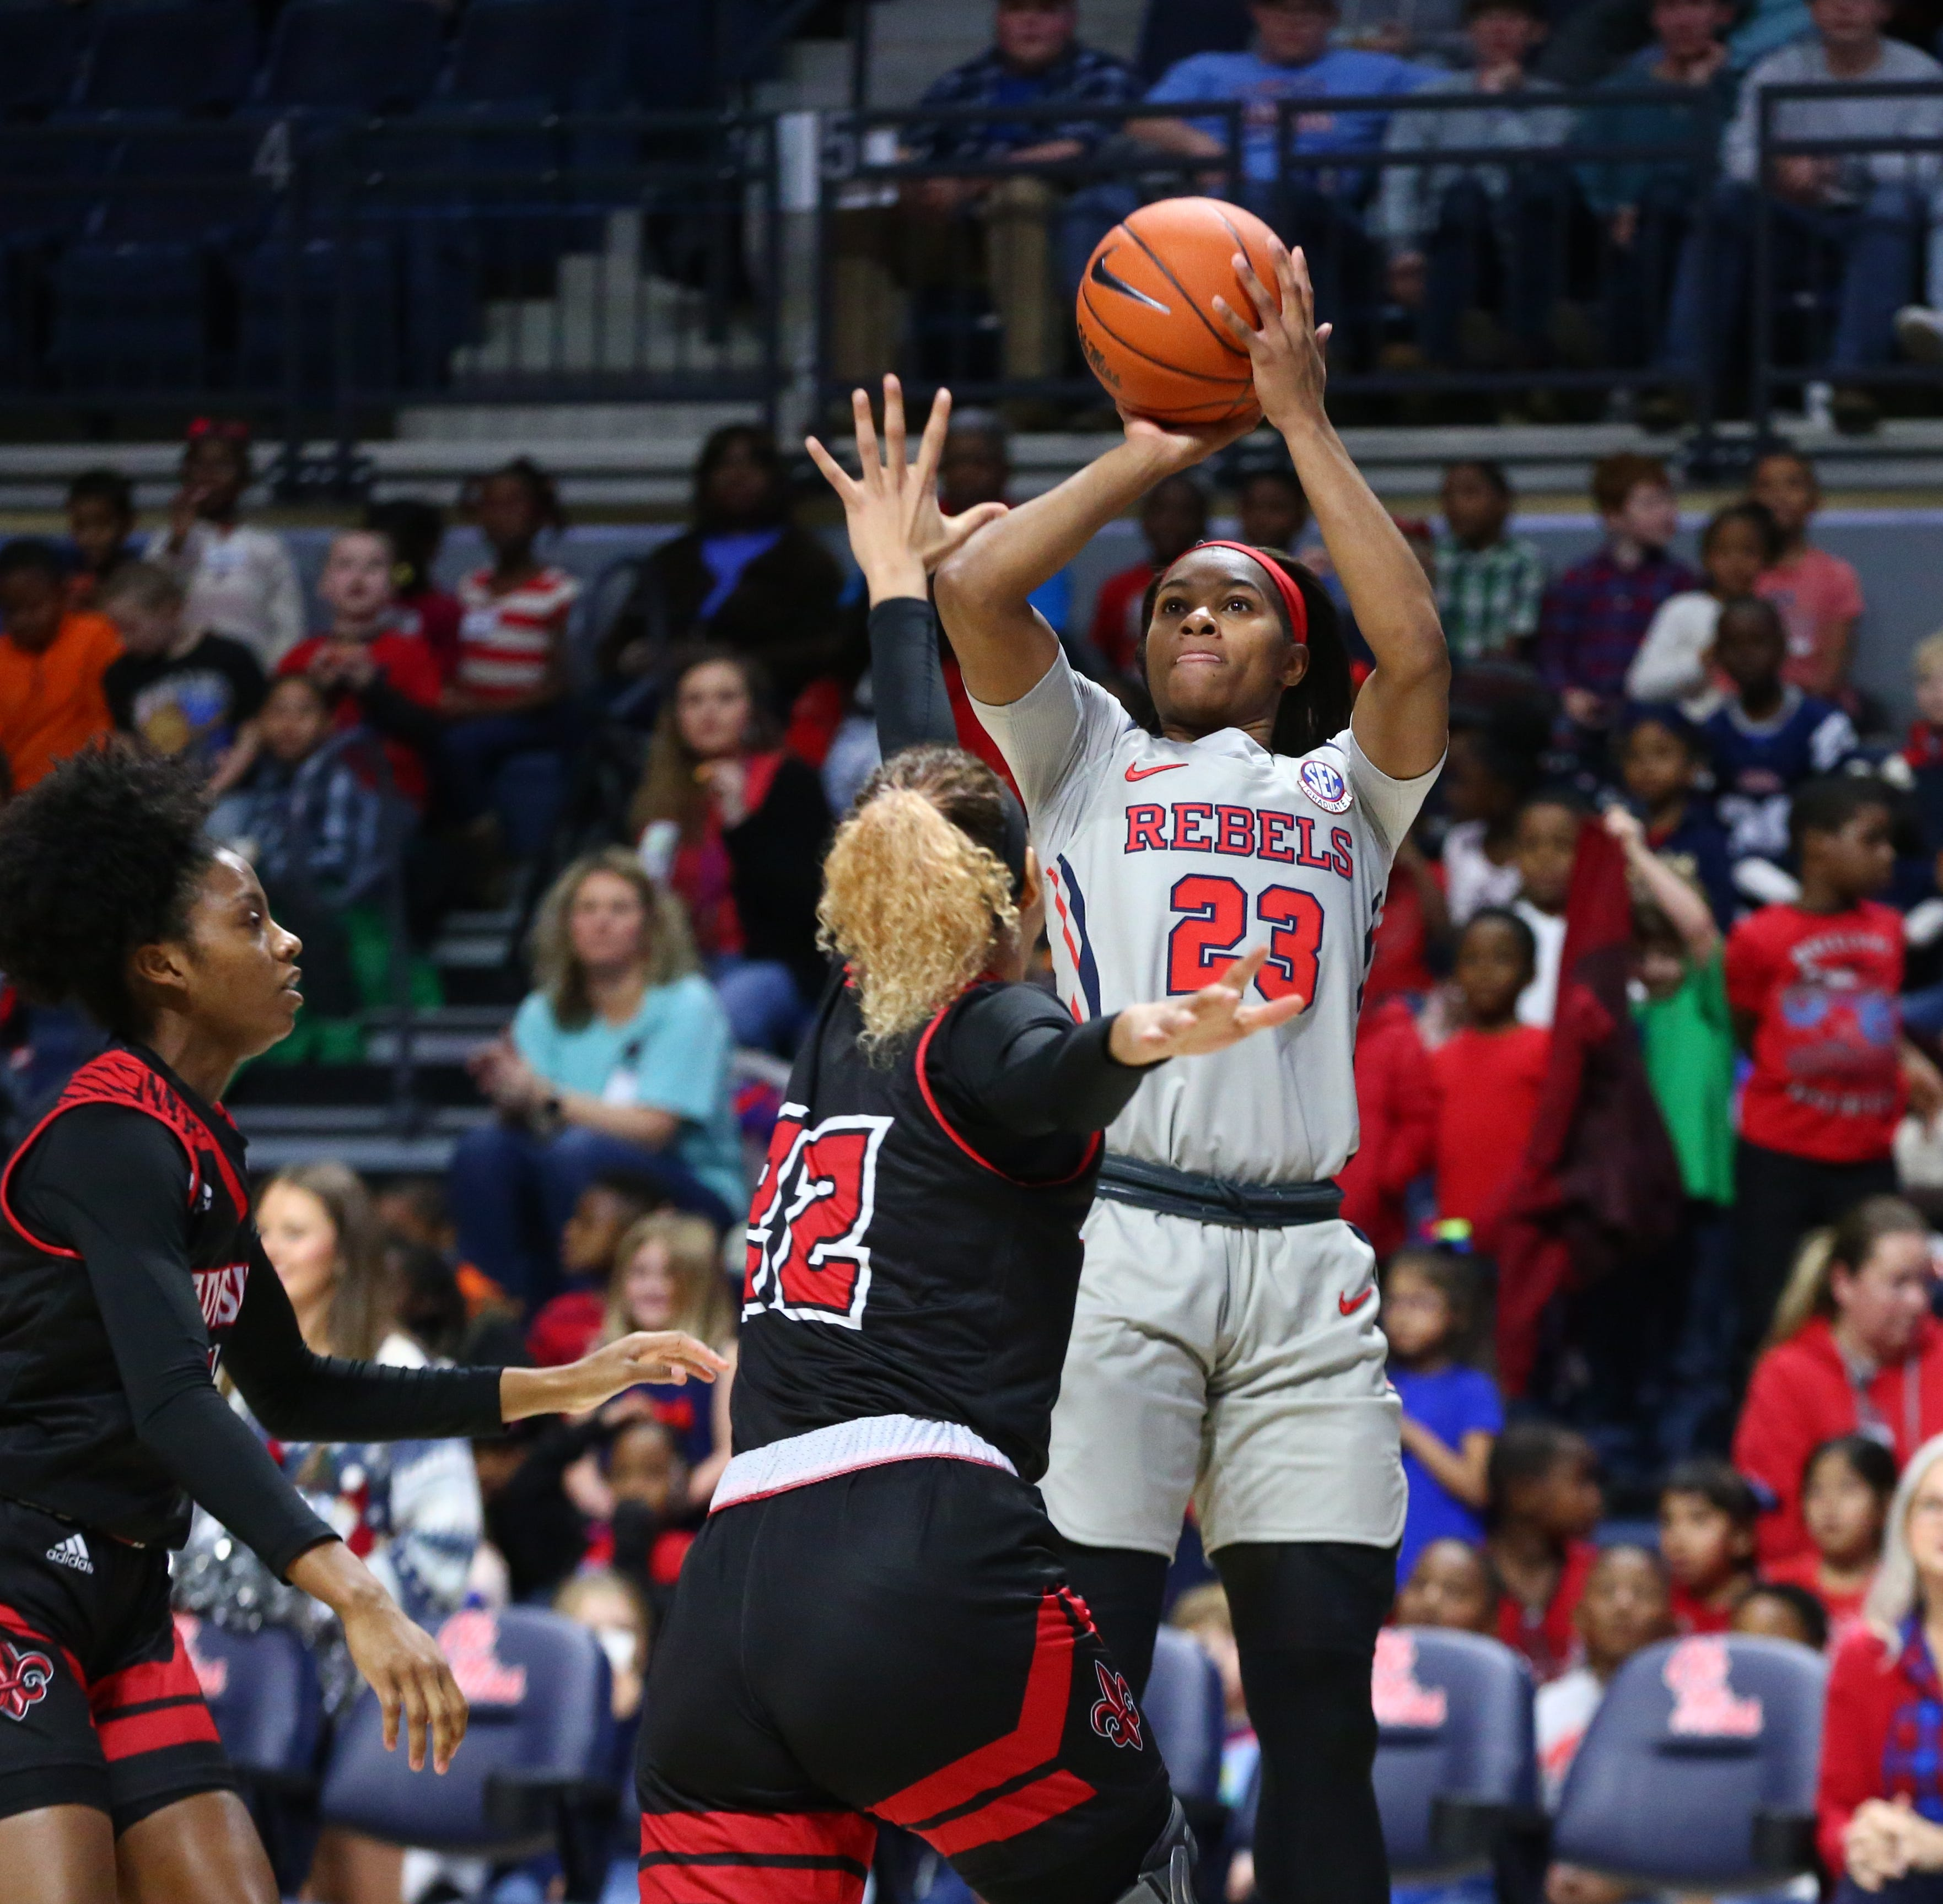 Ole Miss women's basketball prepares for slow-paced game versus LSU on Thursday